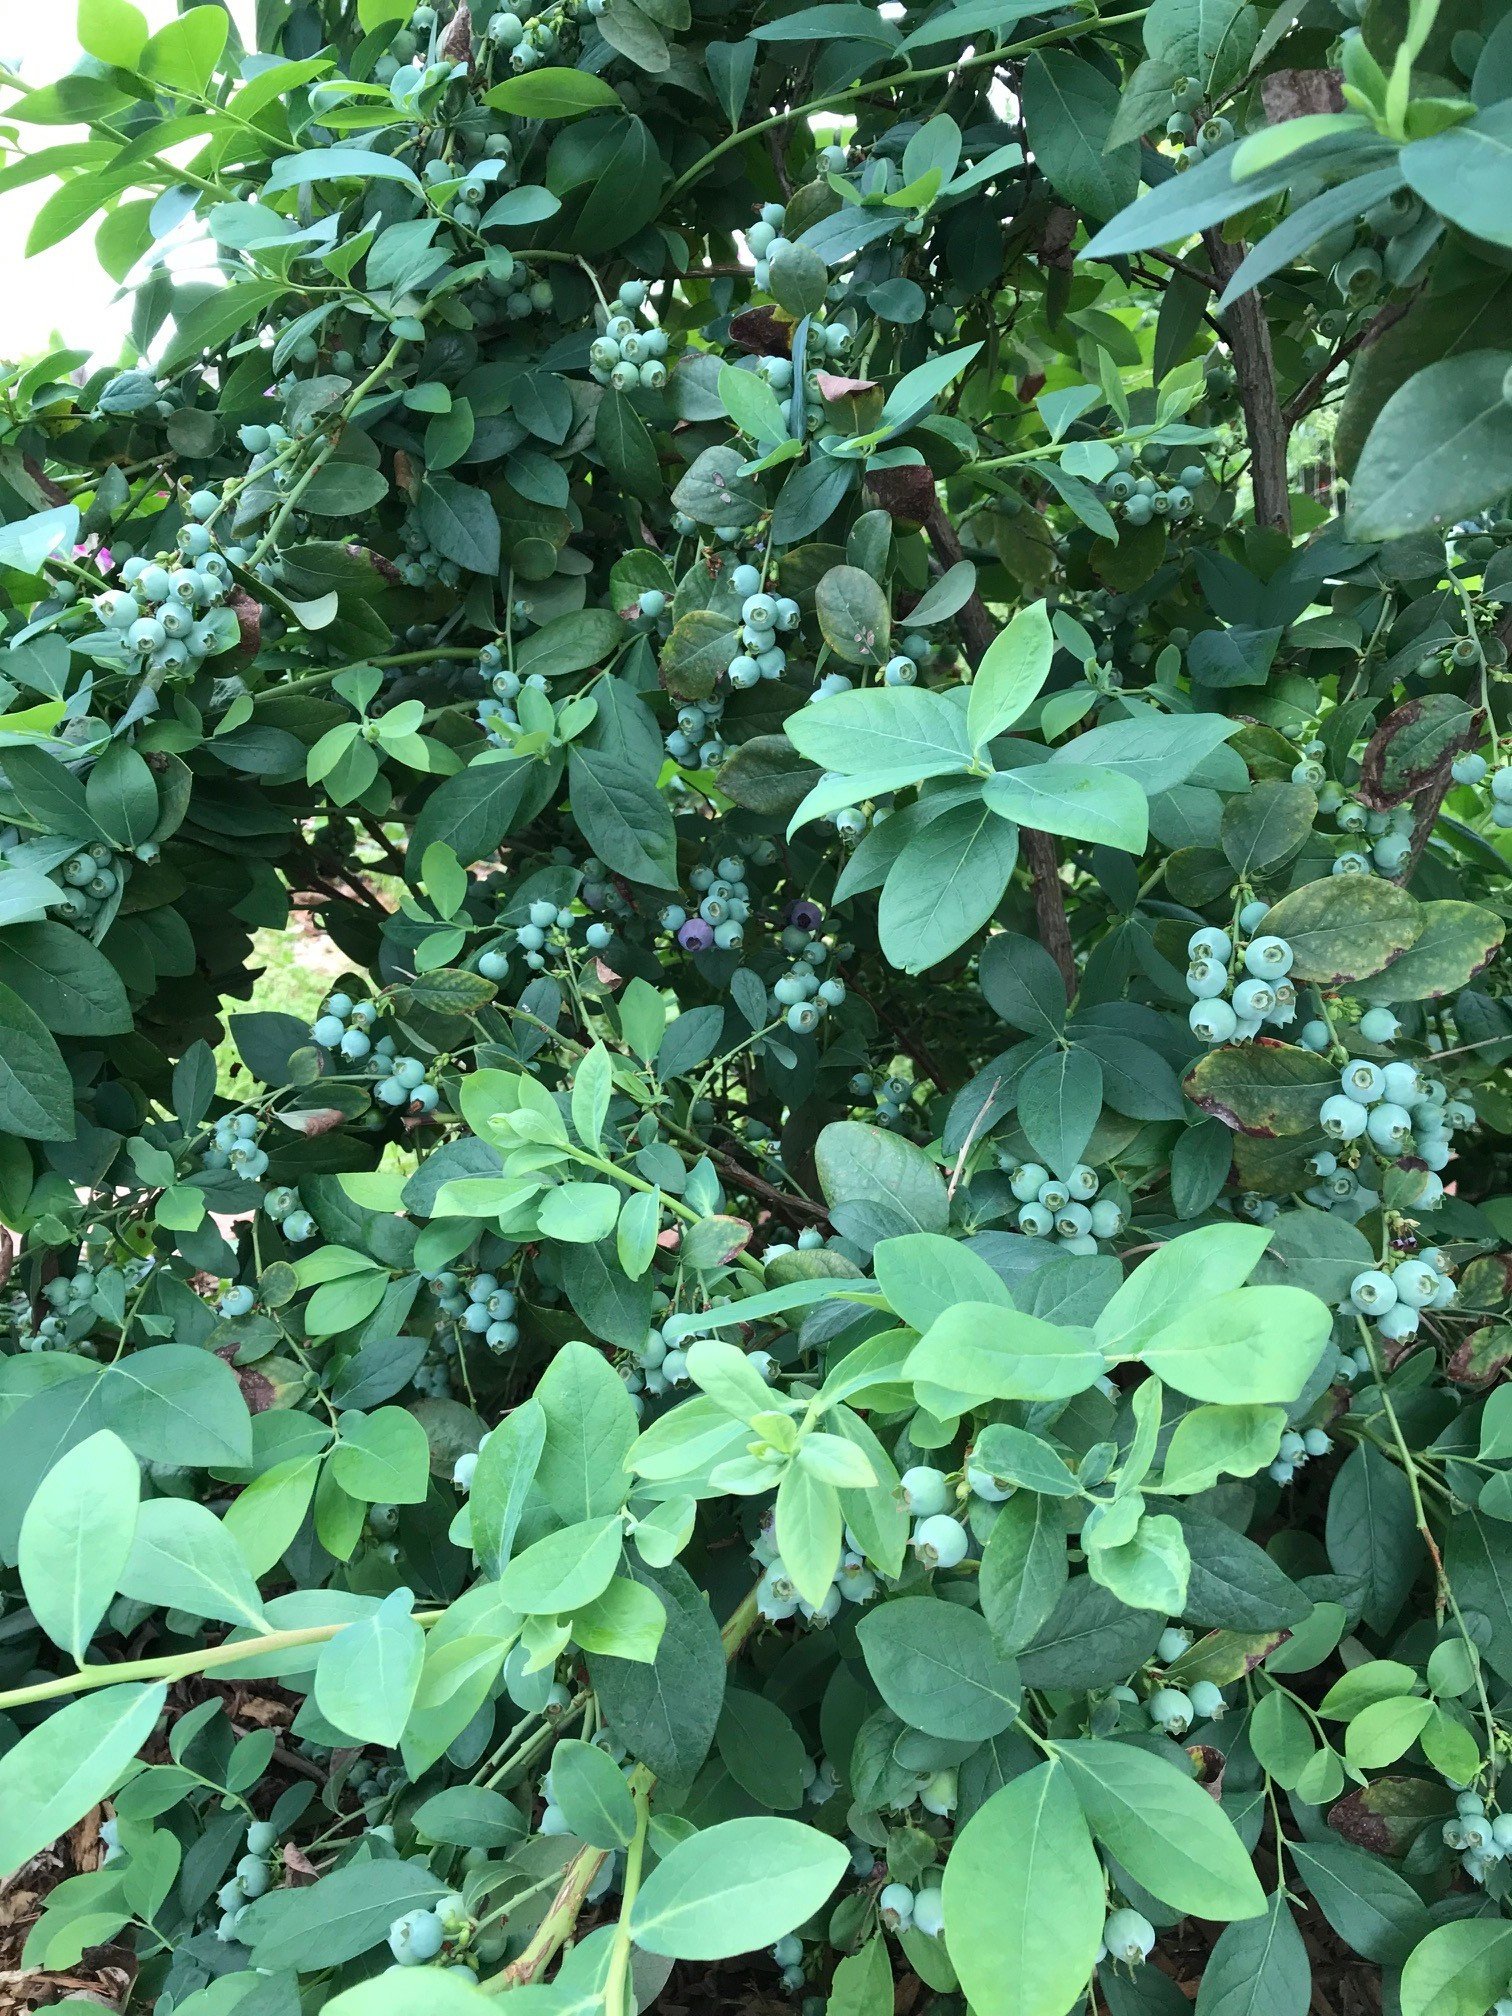 Nancy Wickus, Agriculture/Weights and Measures, grows Blueberries.